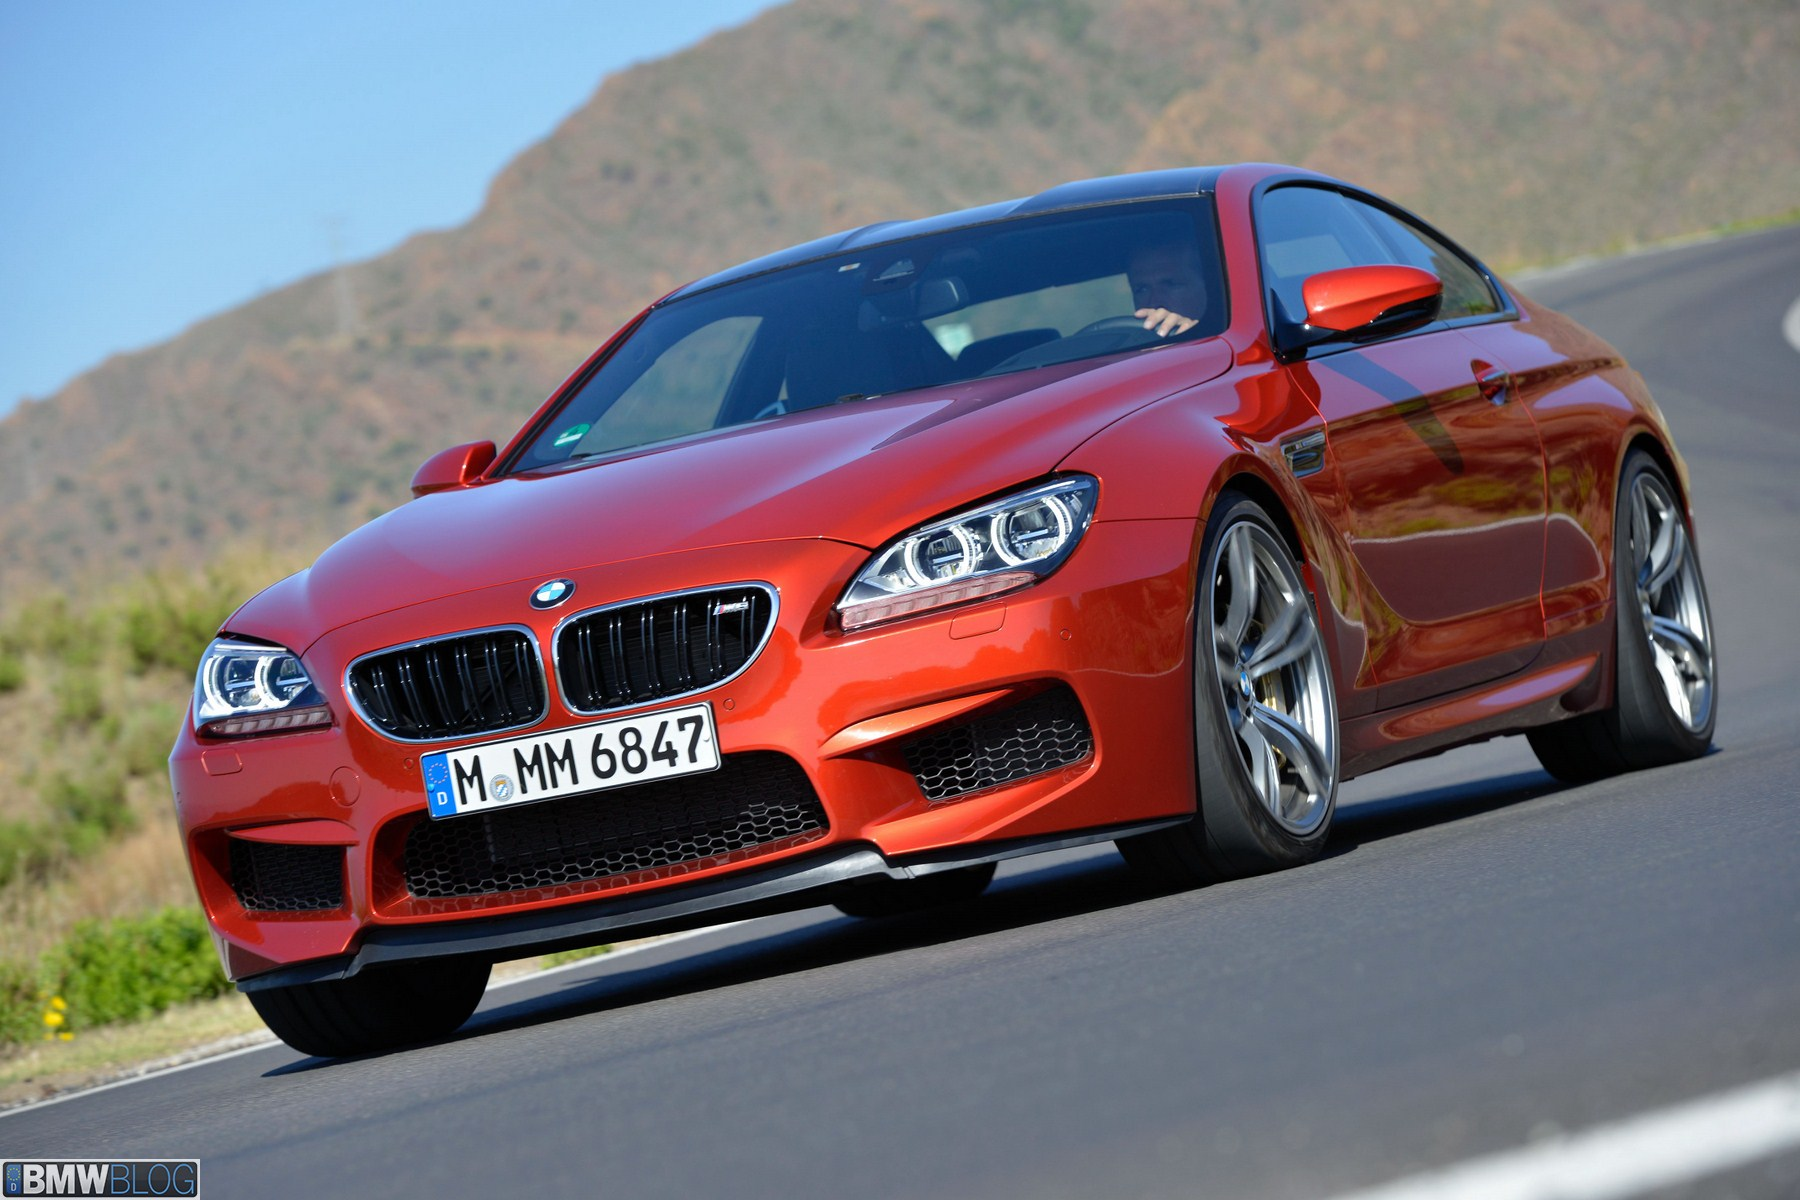 2013 bmw m6 coupe gallery 031